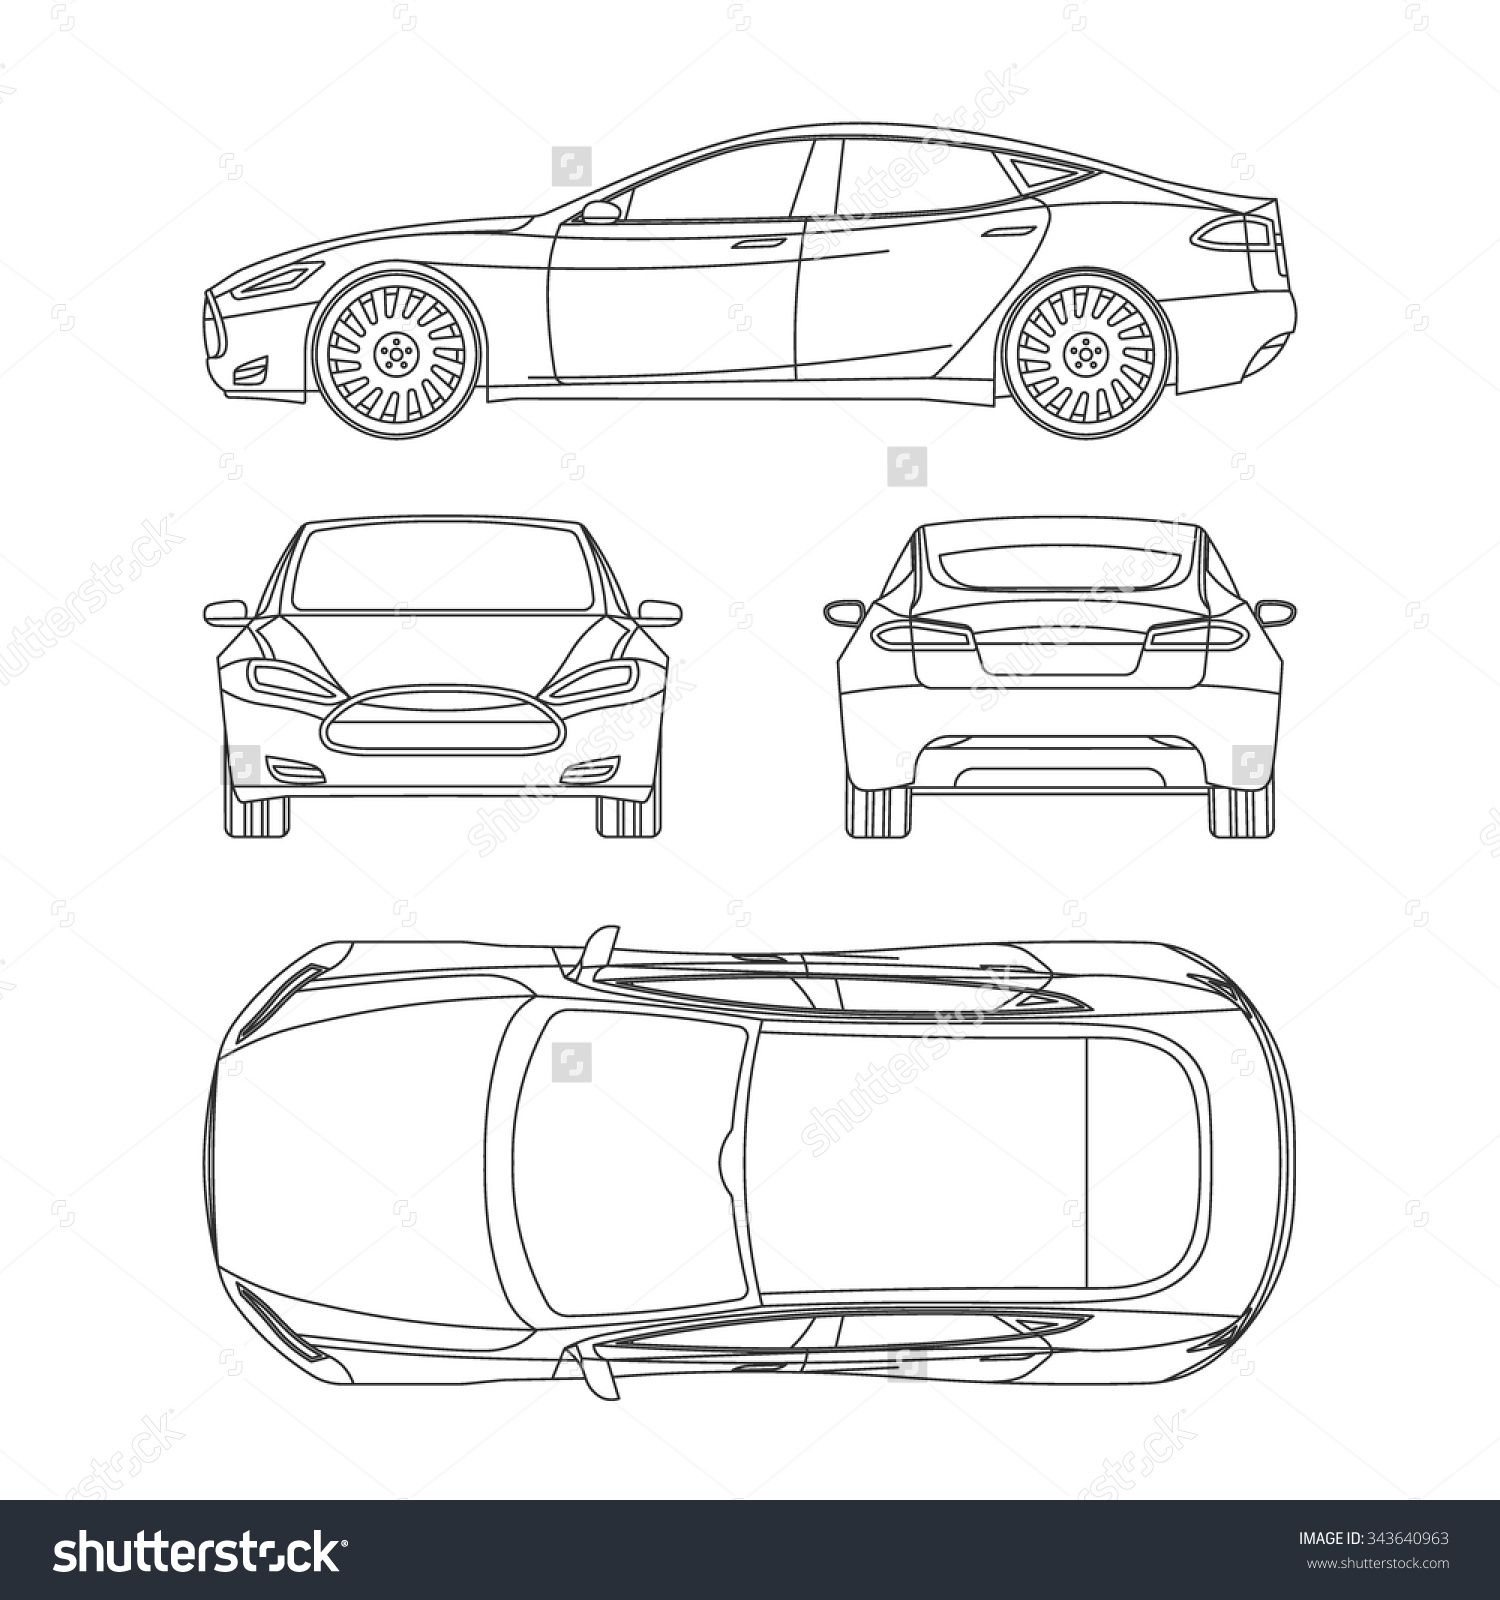 Plan view stock photos images pictures shutterstock car line draw blueprint front four side top back all vector drawings of a building design of ho